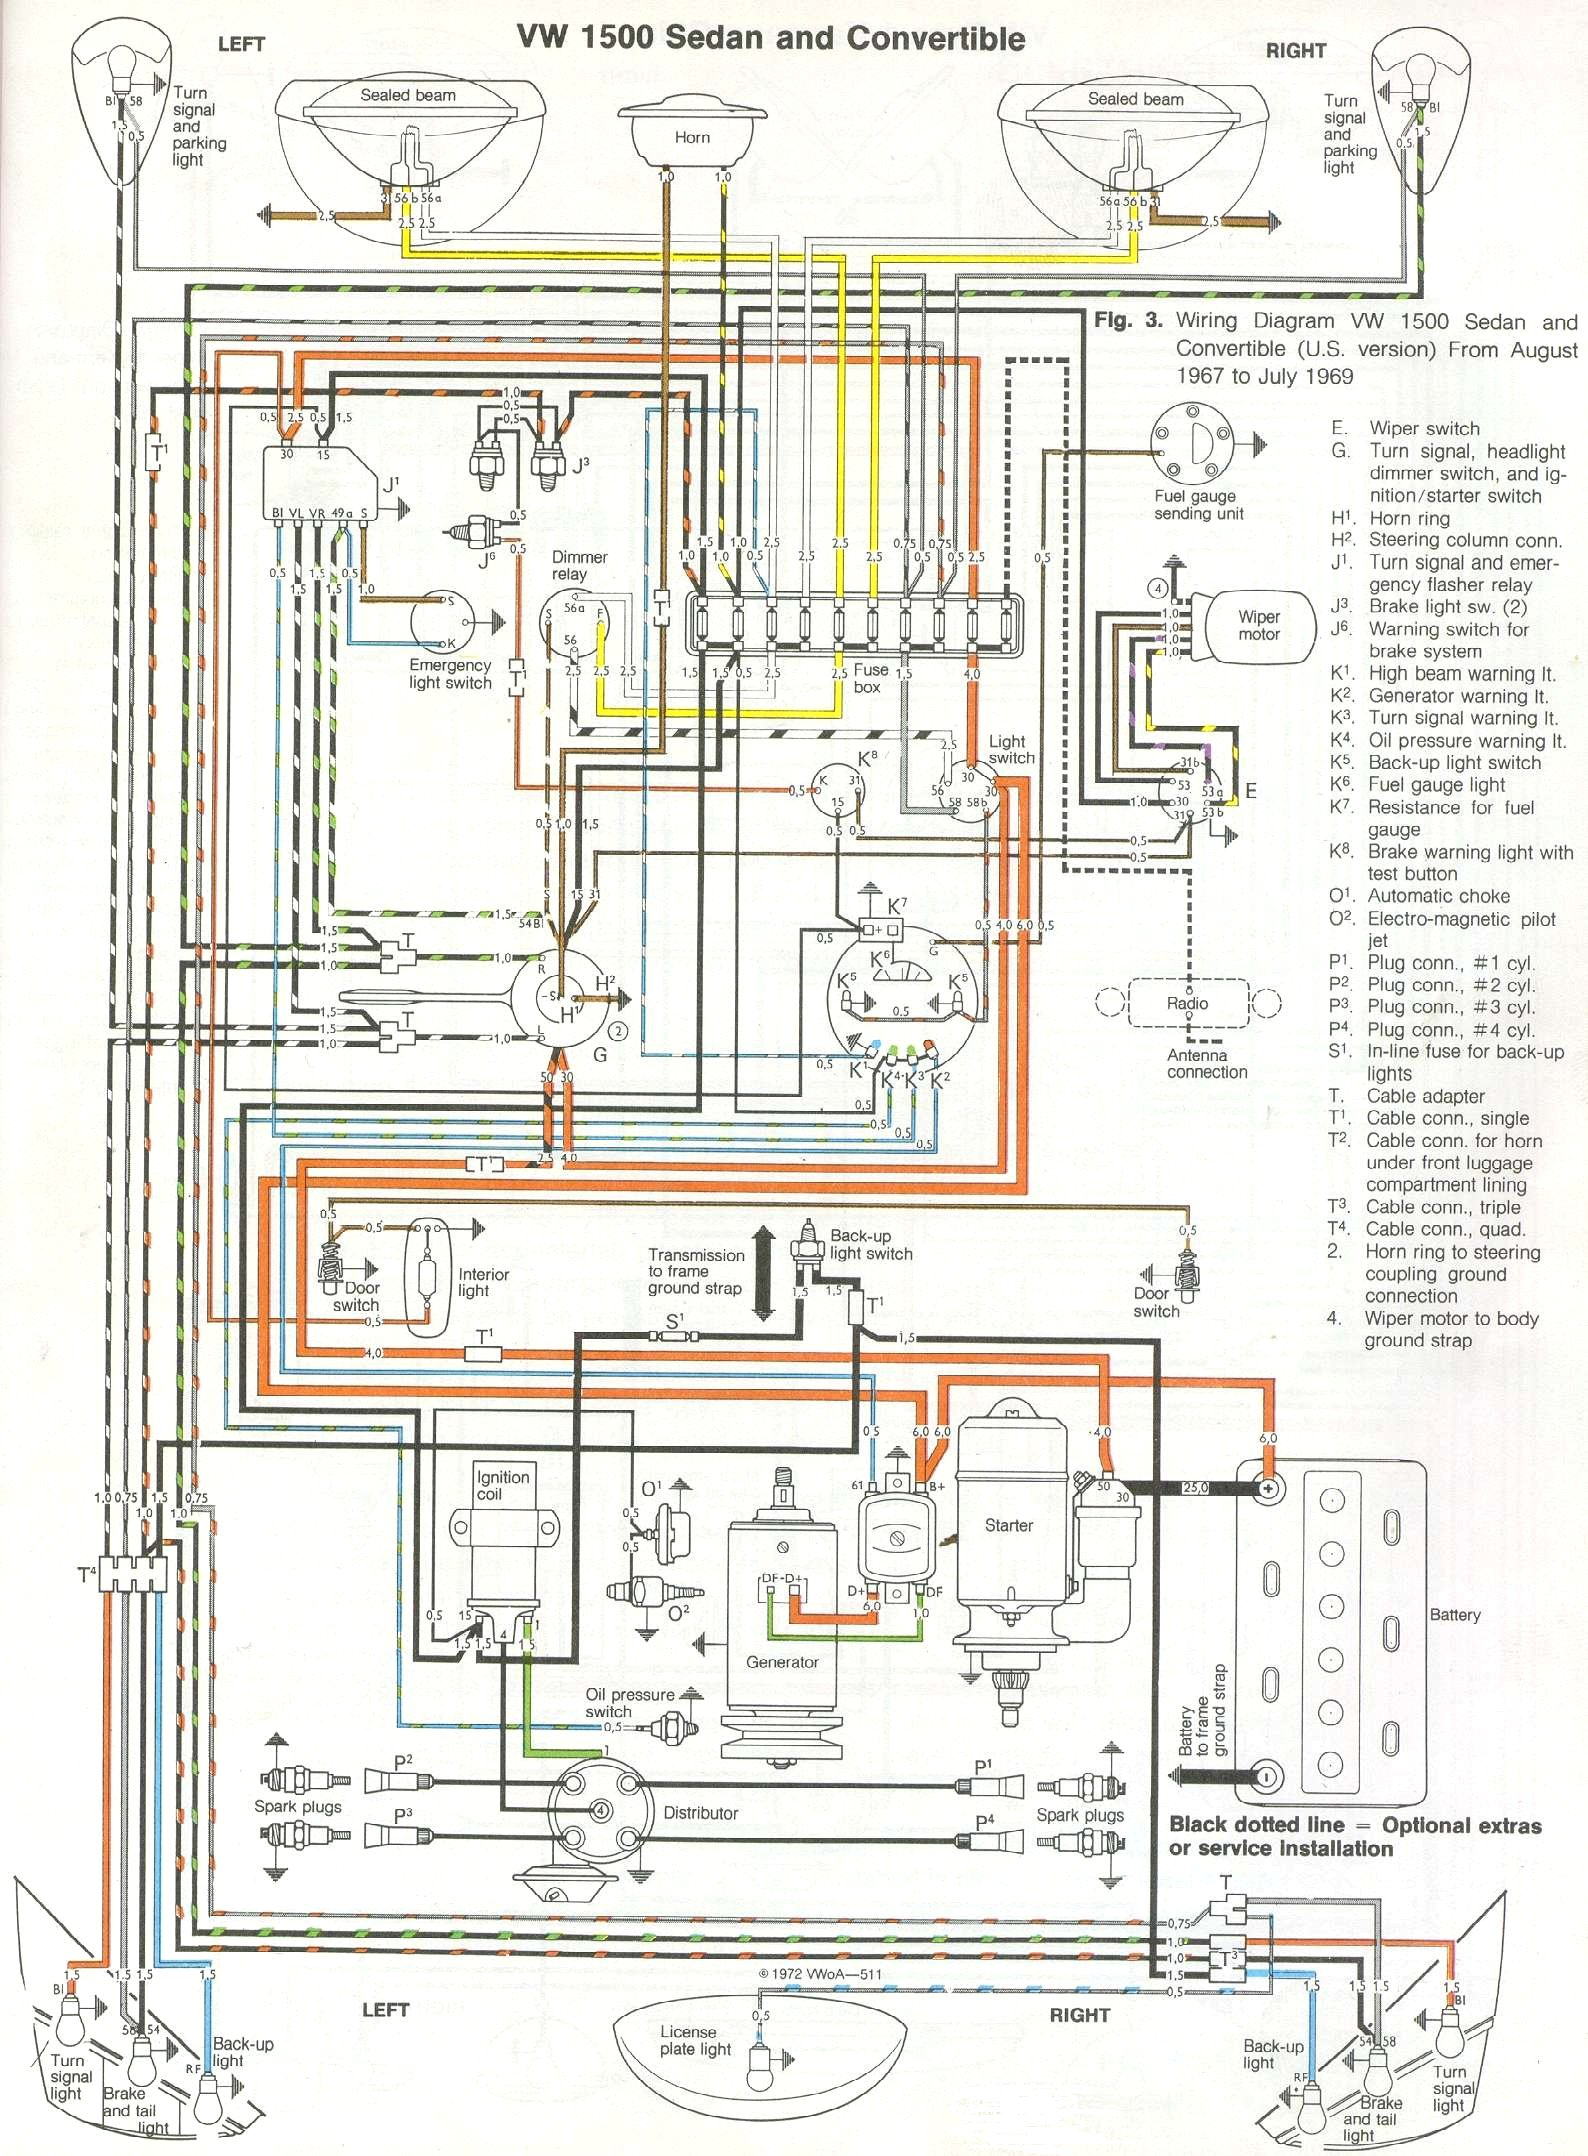 Vw Beetle Wiring Diagram 1974 Diagram of a 1974 Volkswagen Beetle Suspension VW Bug Wiring Diagram 1974 VW Beetle Air Conditioning 1961 VW Beetle Wiring Diagram 74 Super Beetle and Beetle Wirin